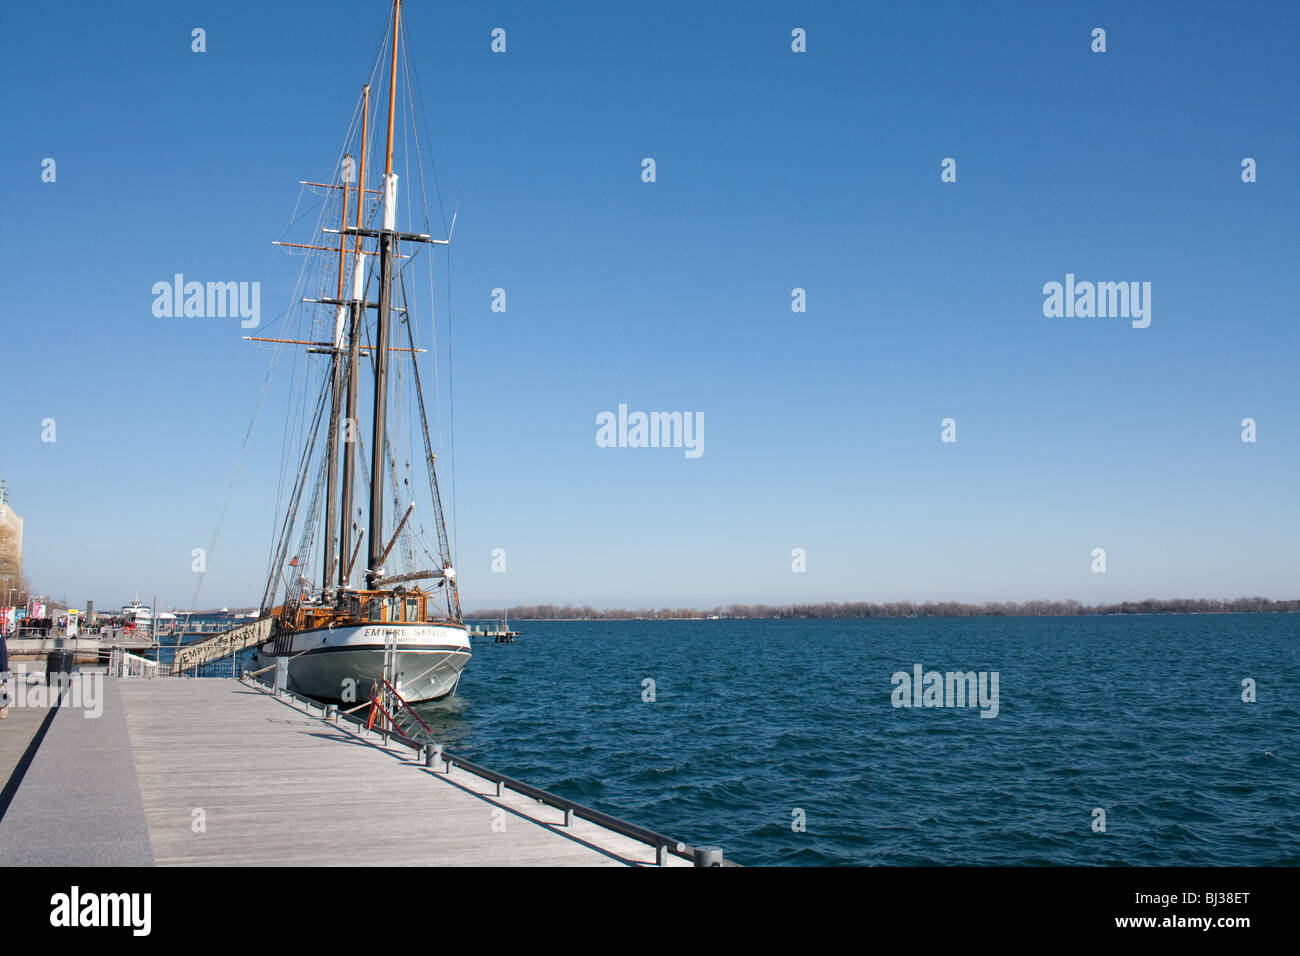 One of the largest sailing ship empire sandy at the toronto port, sail down - Stock Image